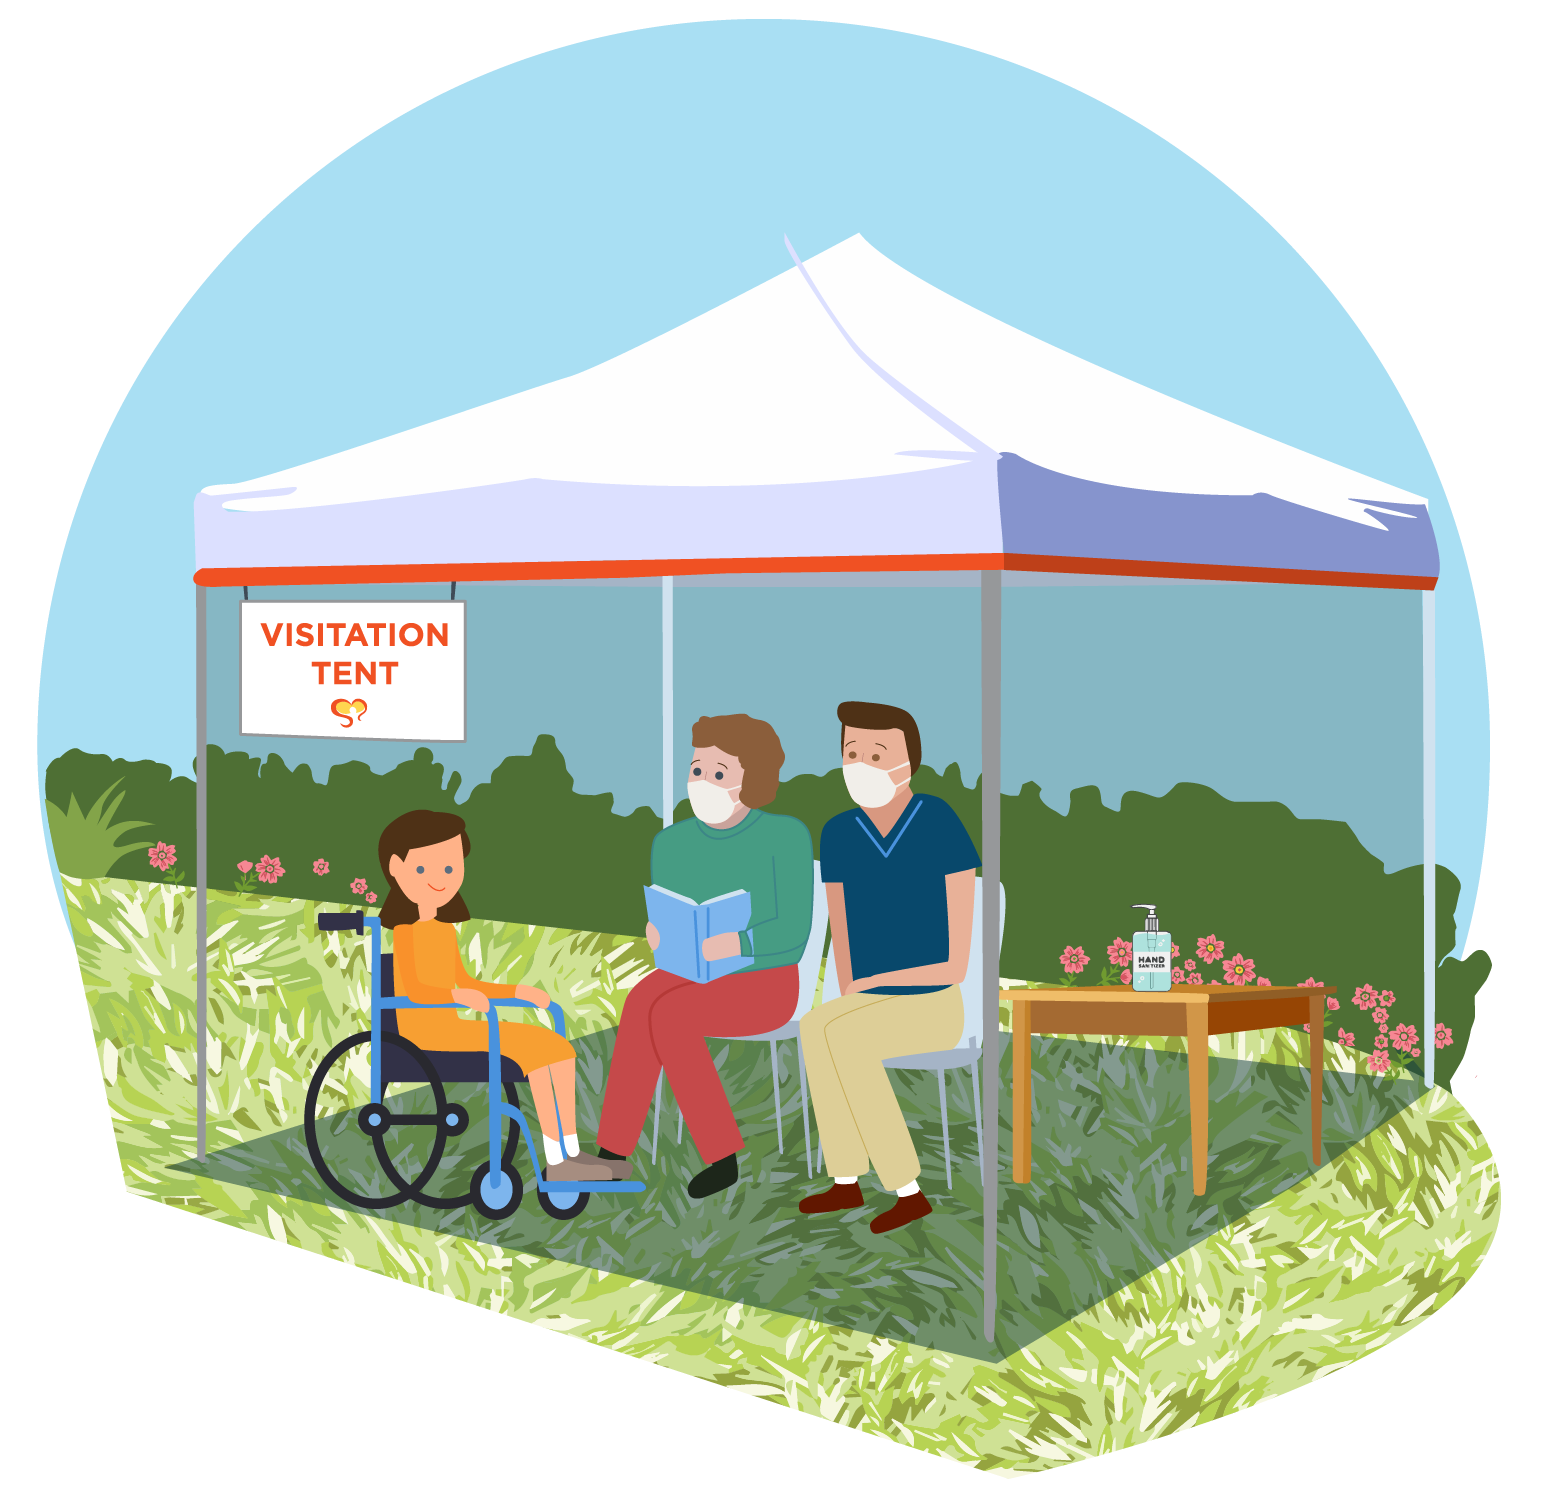 Illustration of a Family at a Visitation Tent